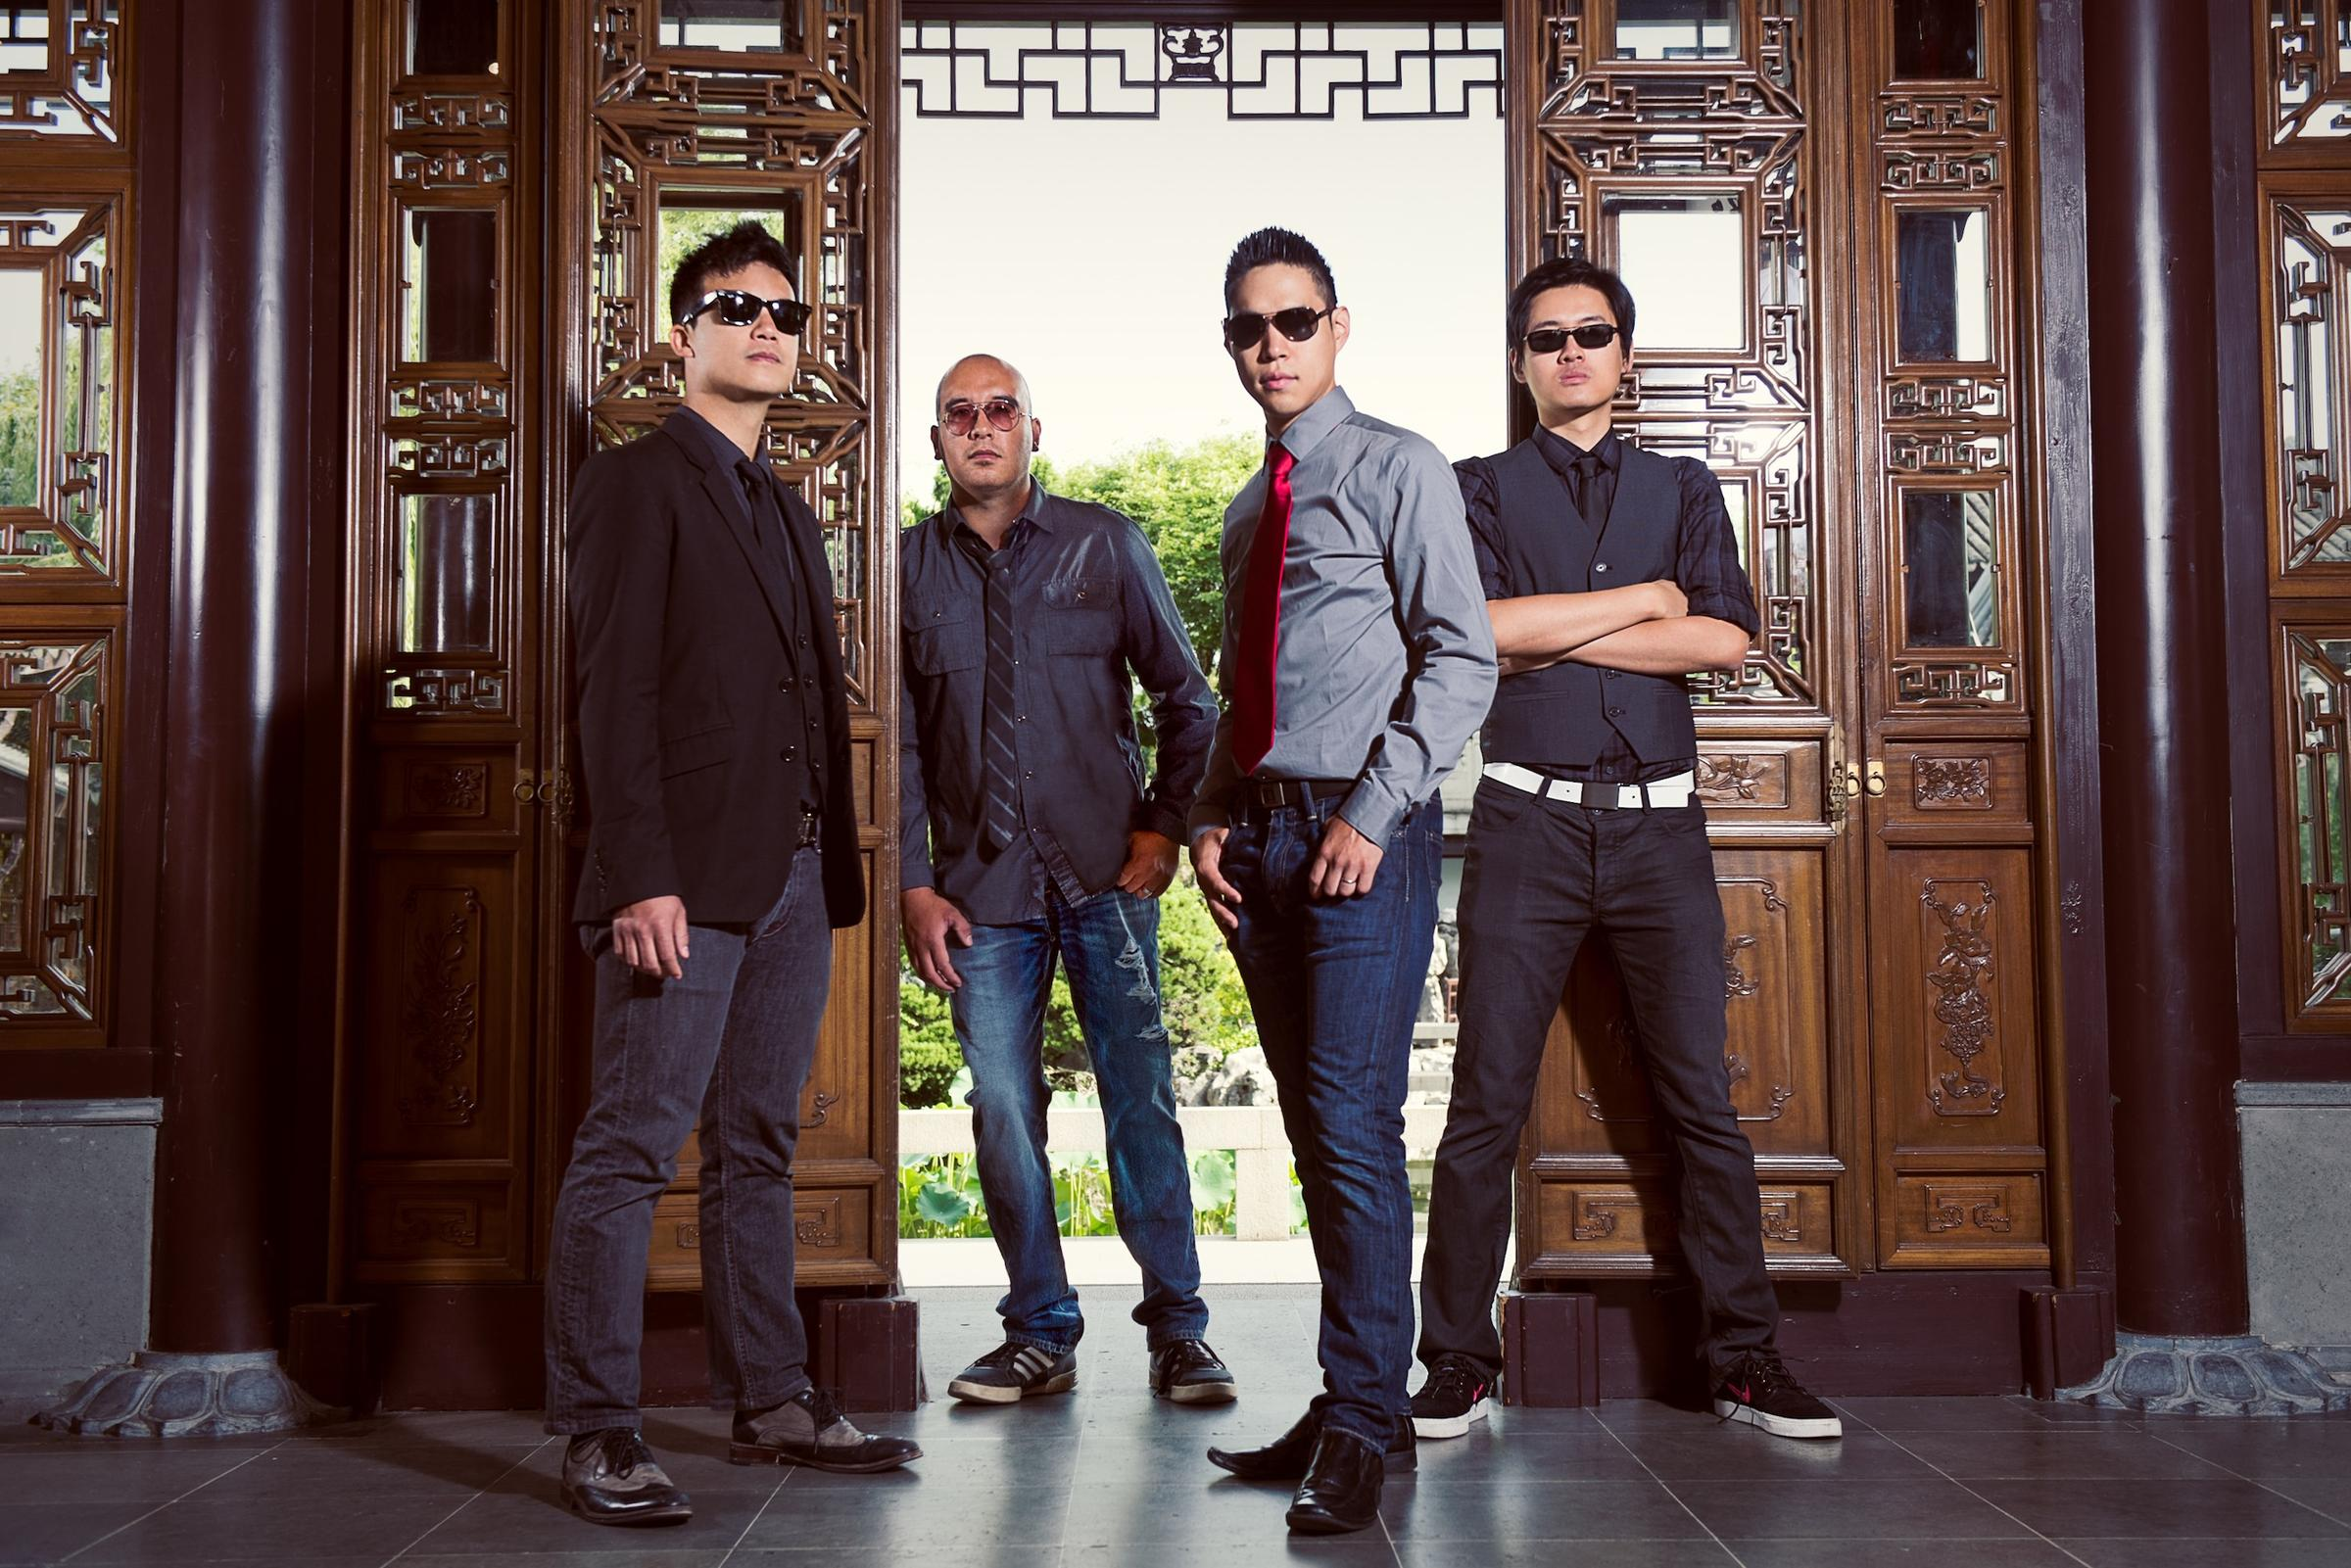 American band win top court case over offensive trademark